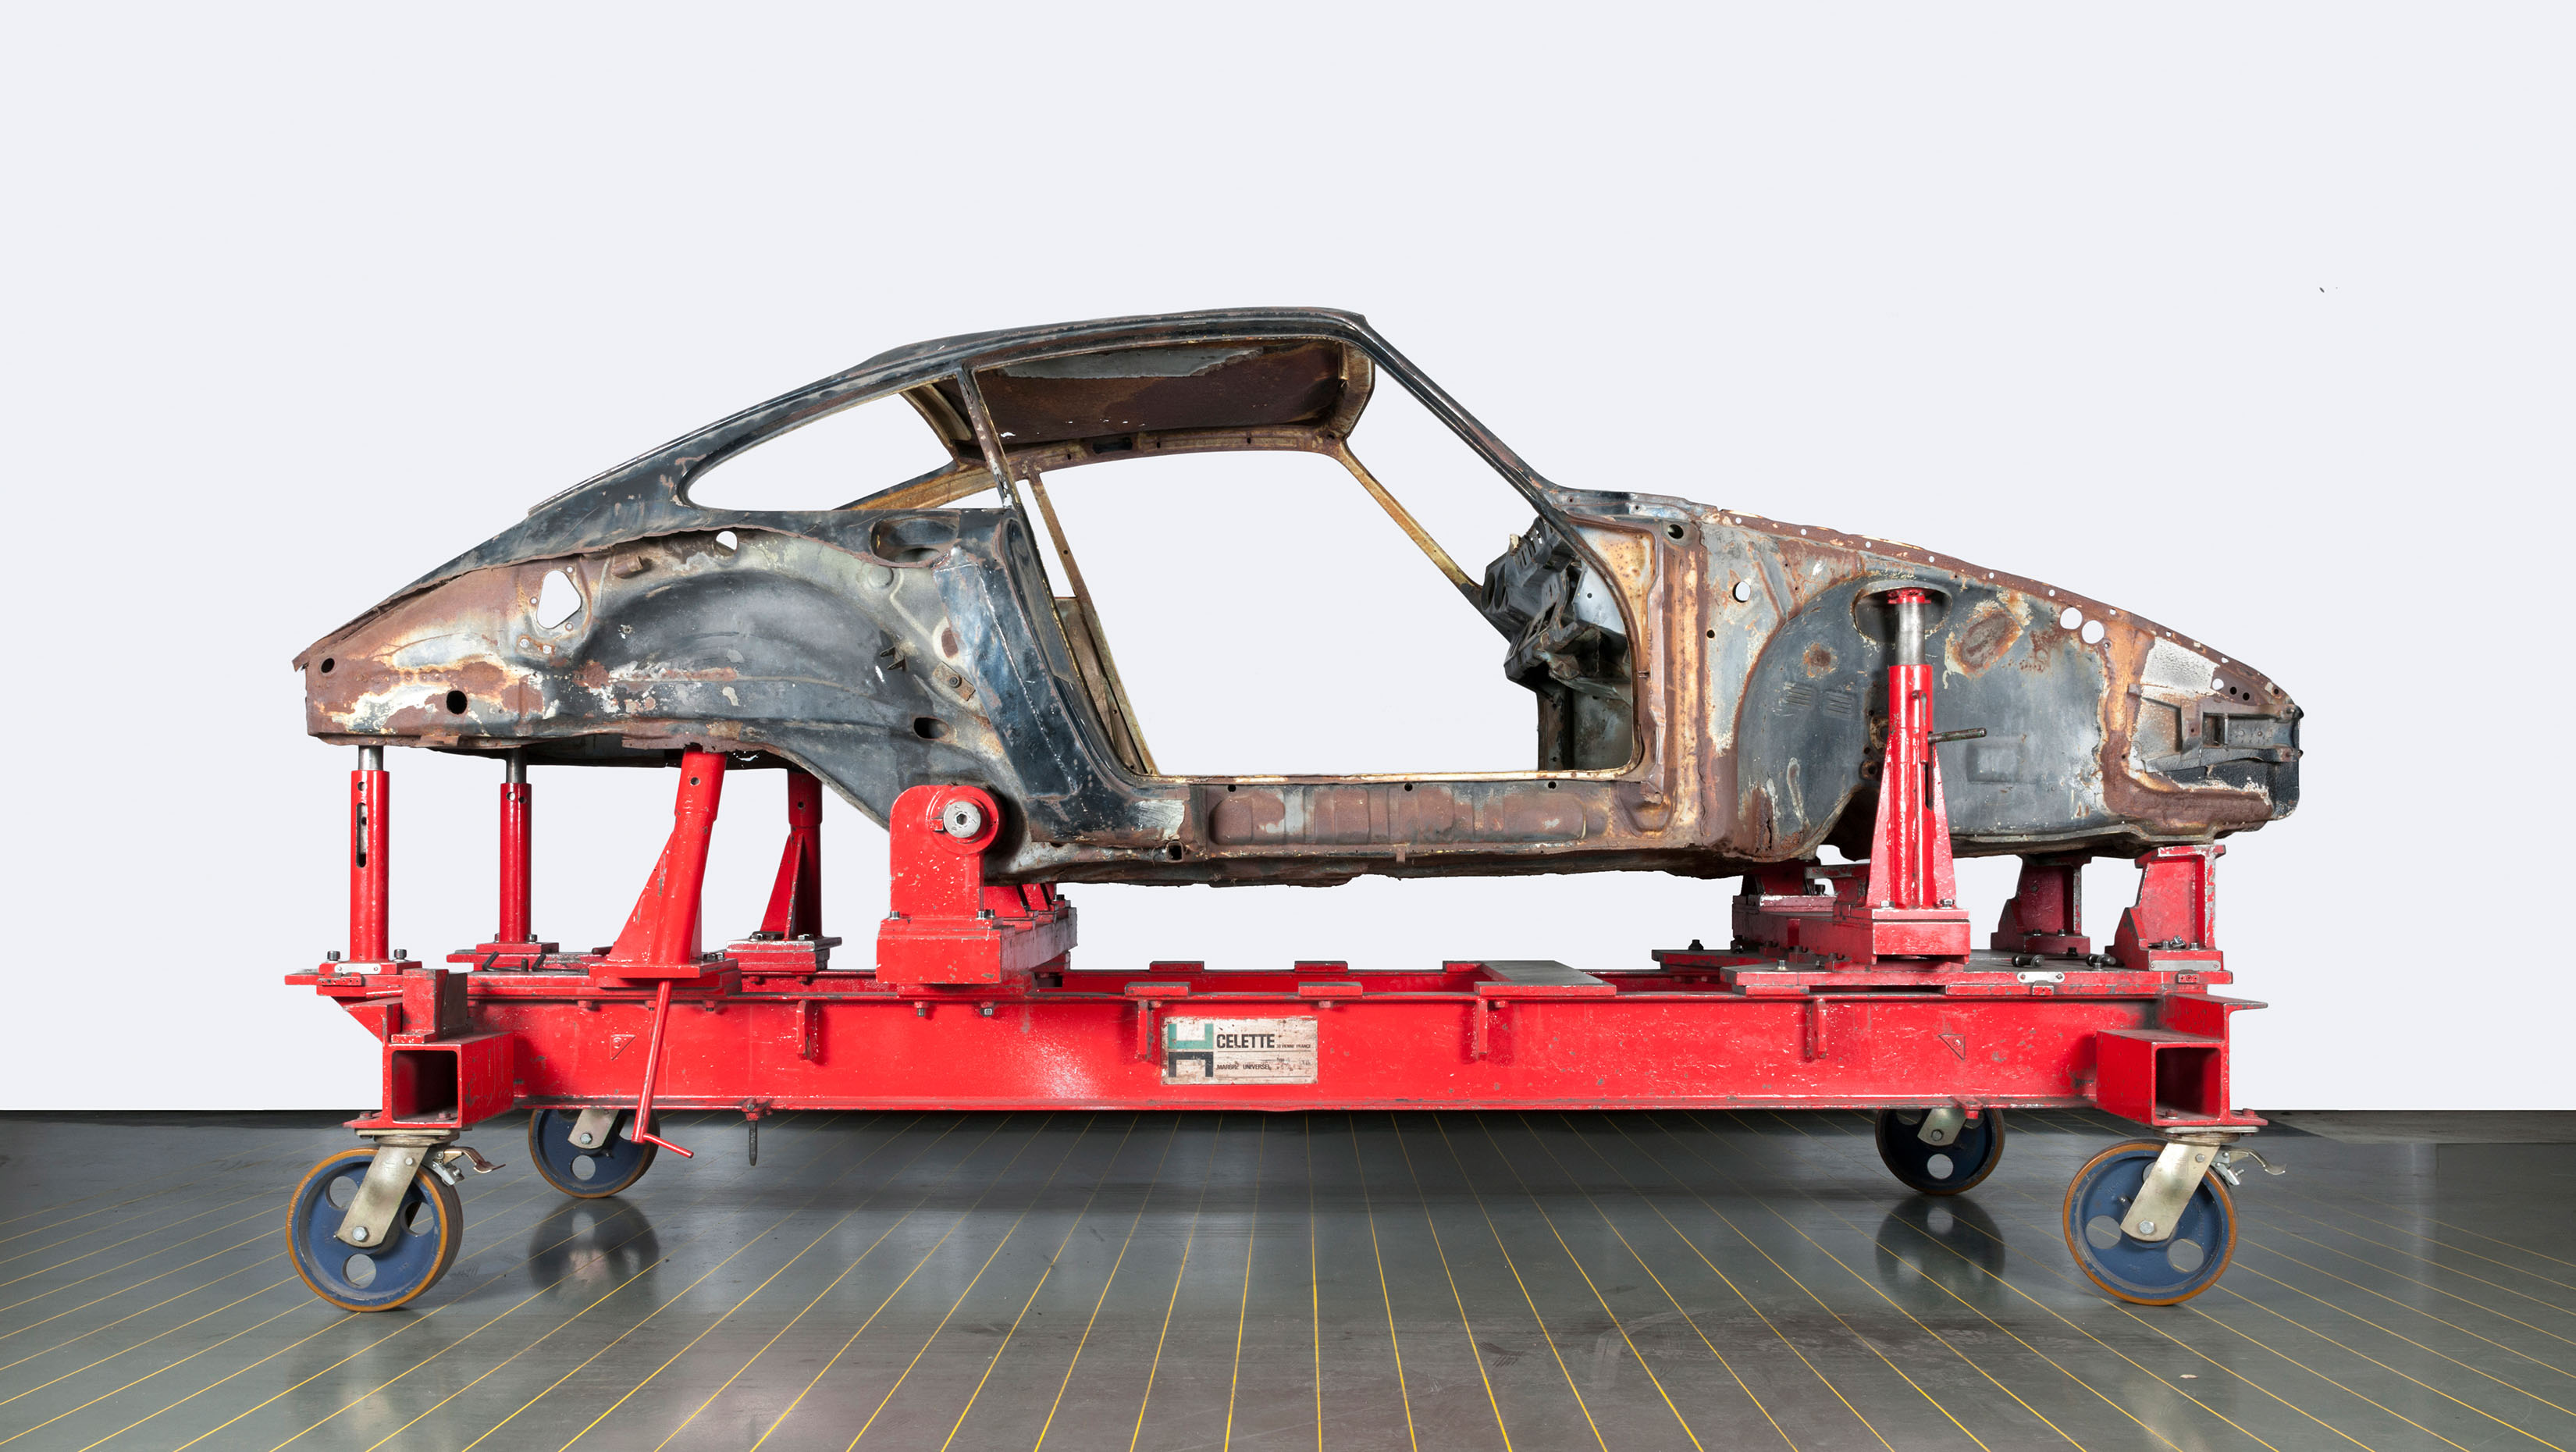 Restoration underway. 1972 Porsche 911 2.5 ST body on hydraulic